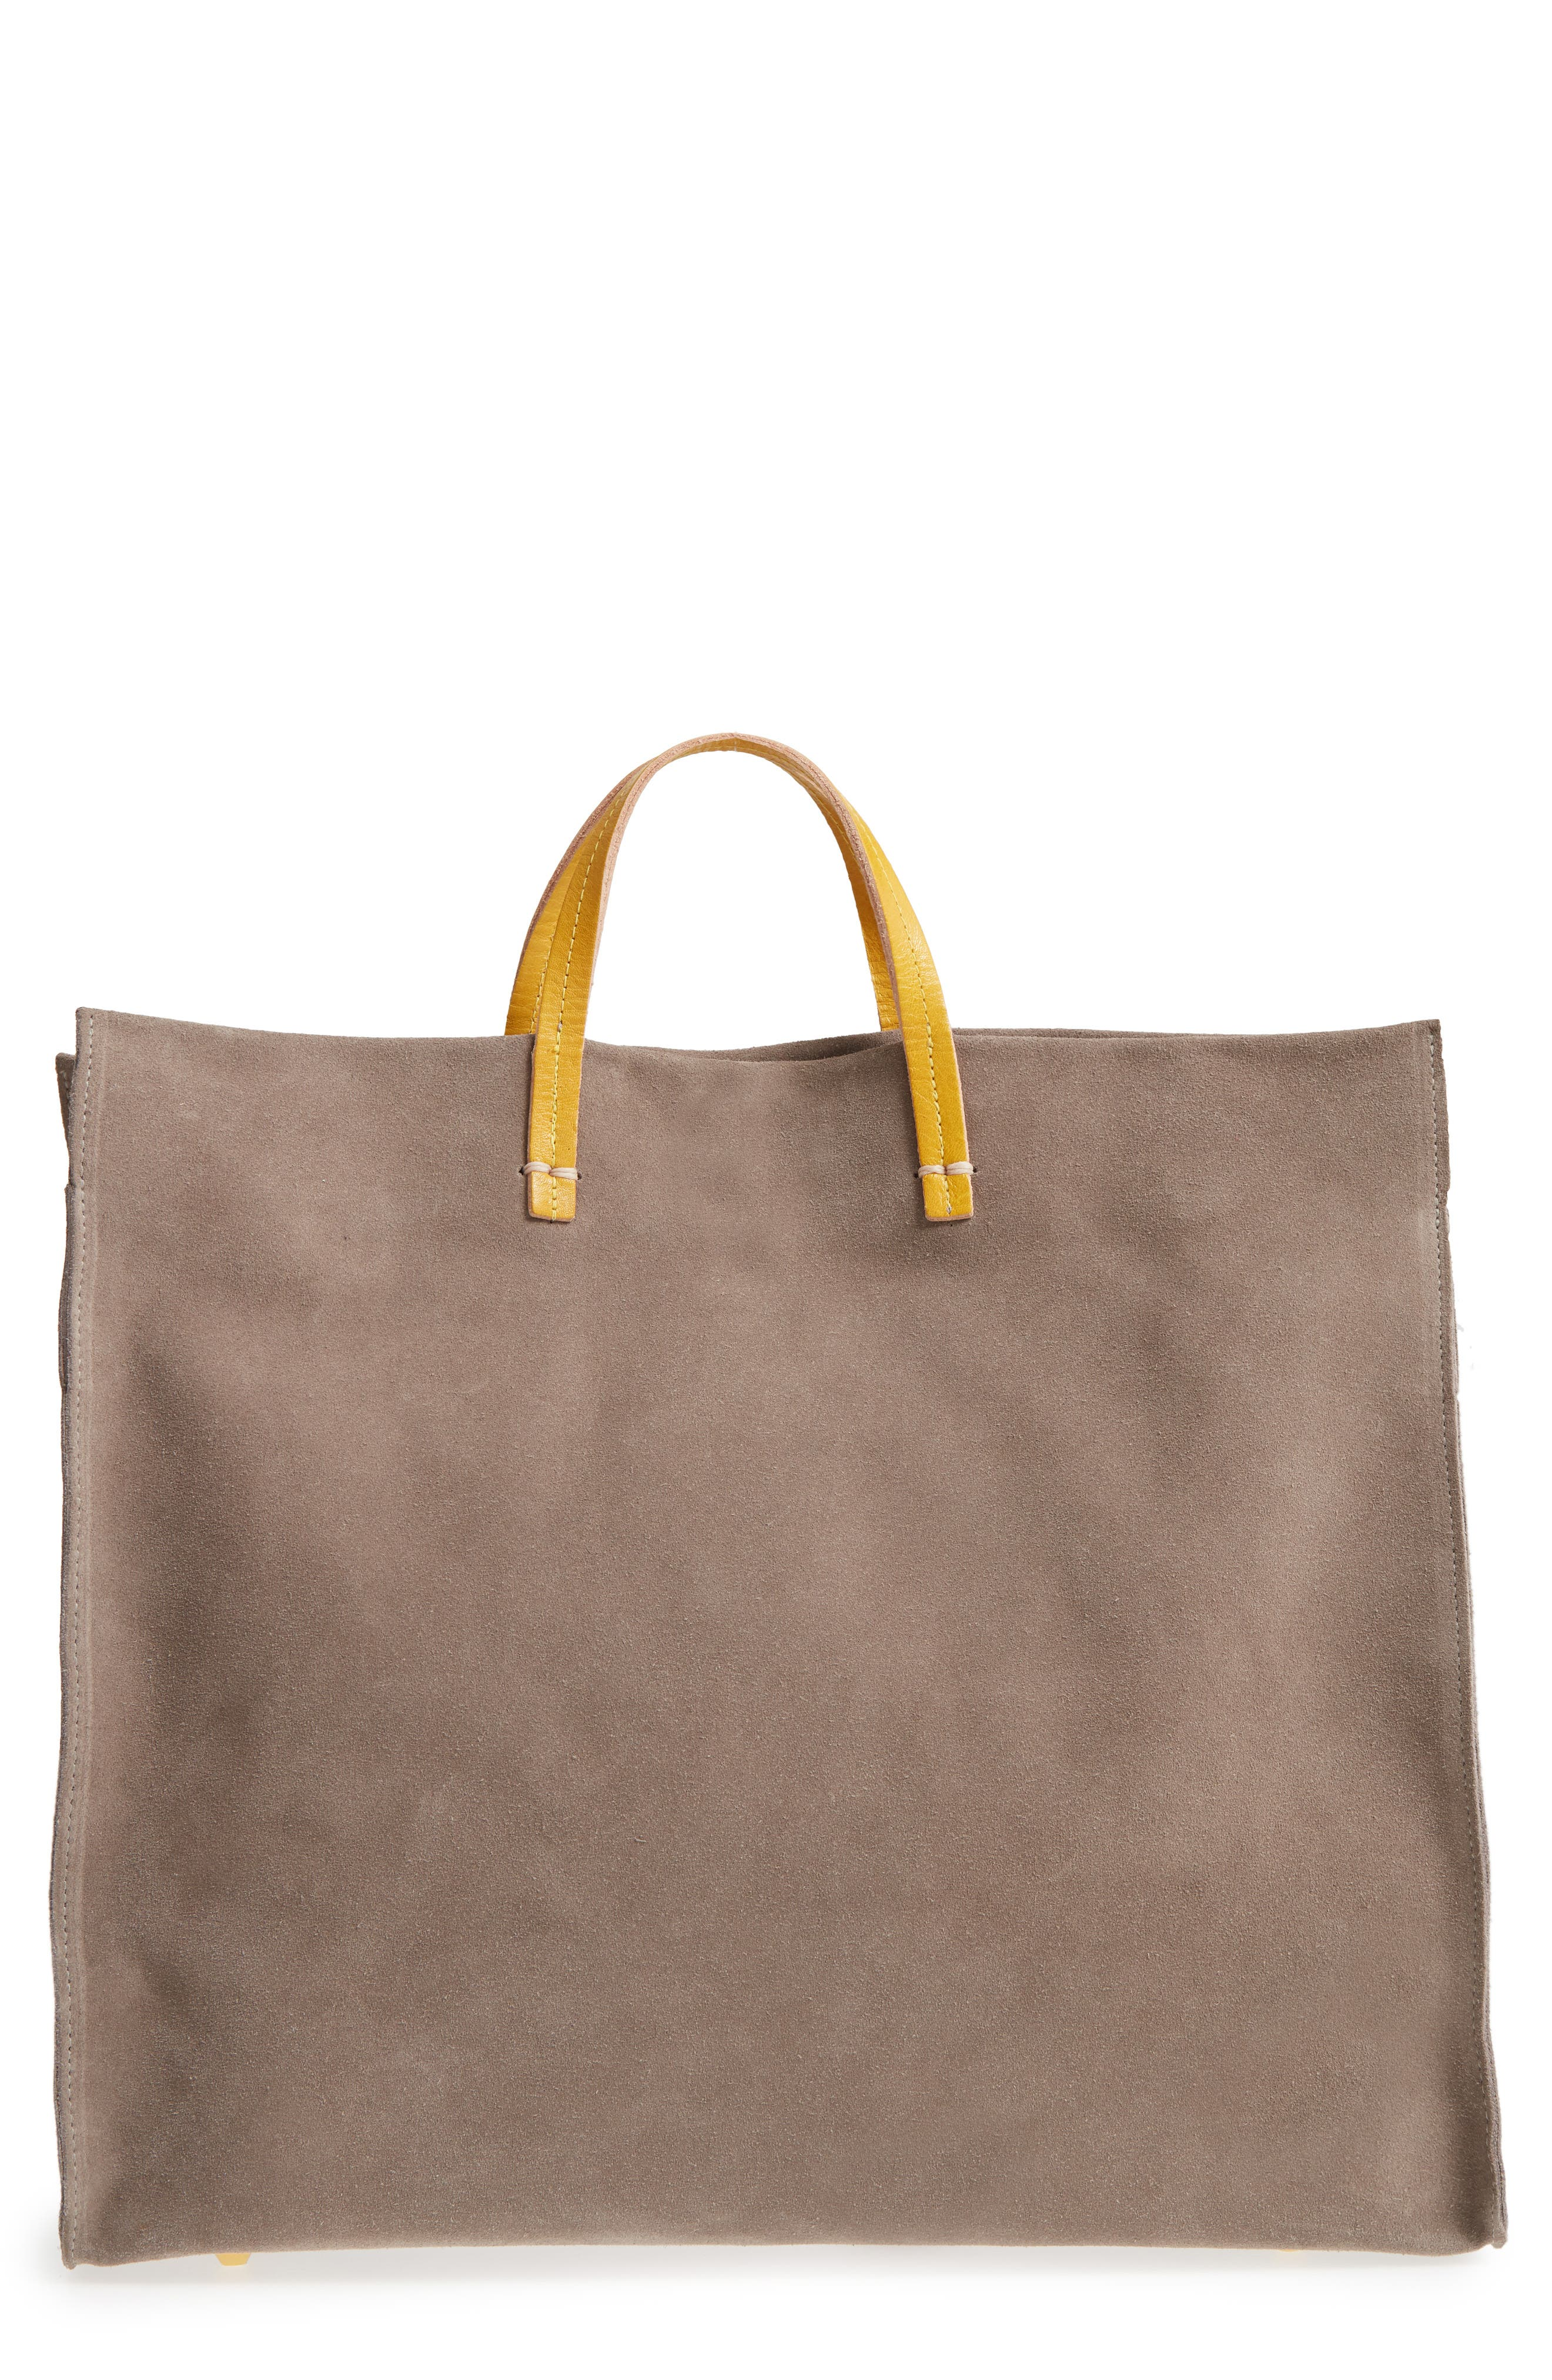 Simple Suede Tote,                             Main thumbnail 1, color,                             200